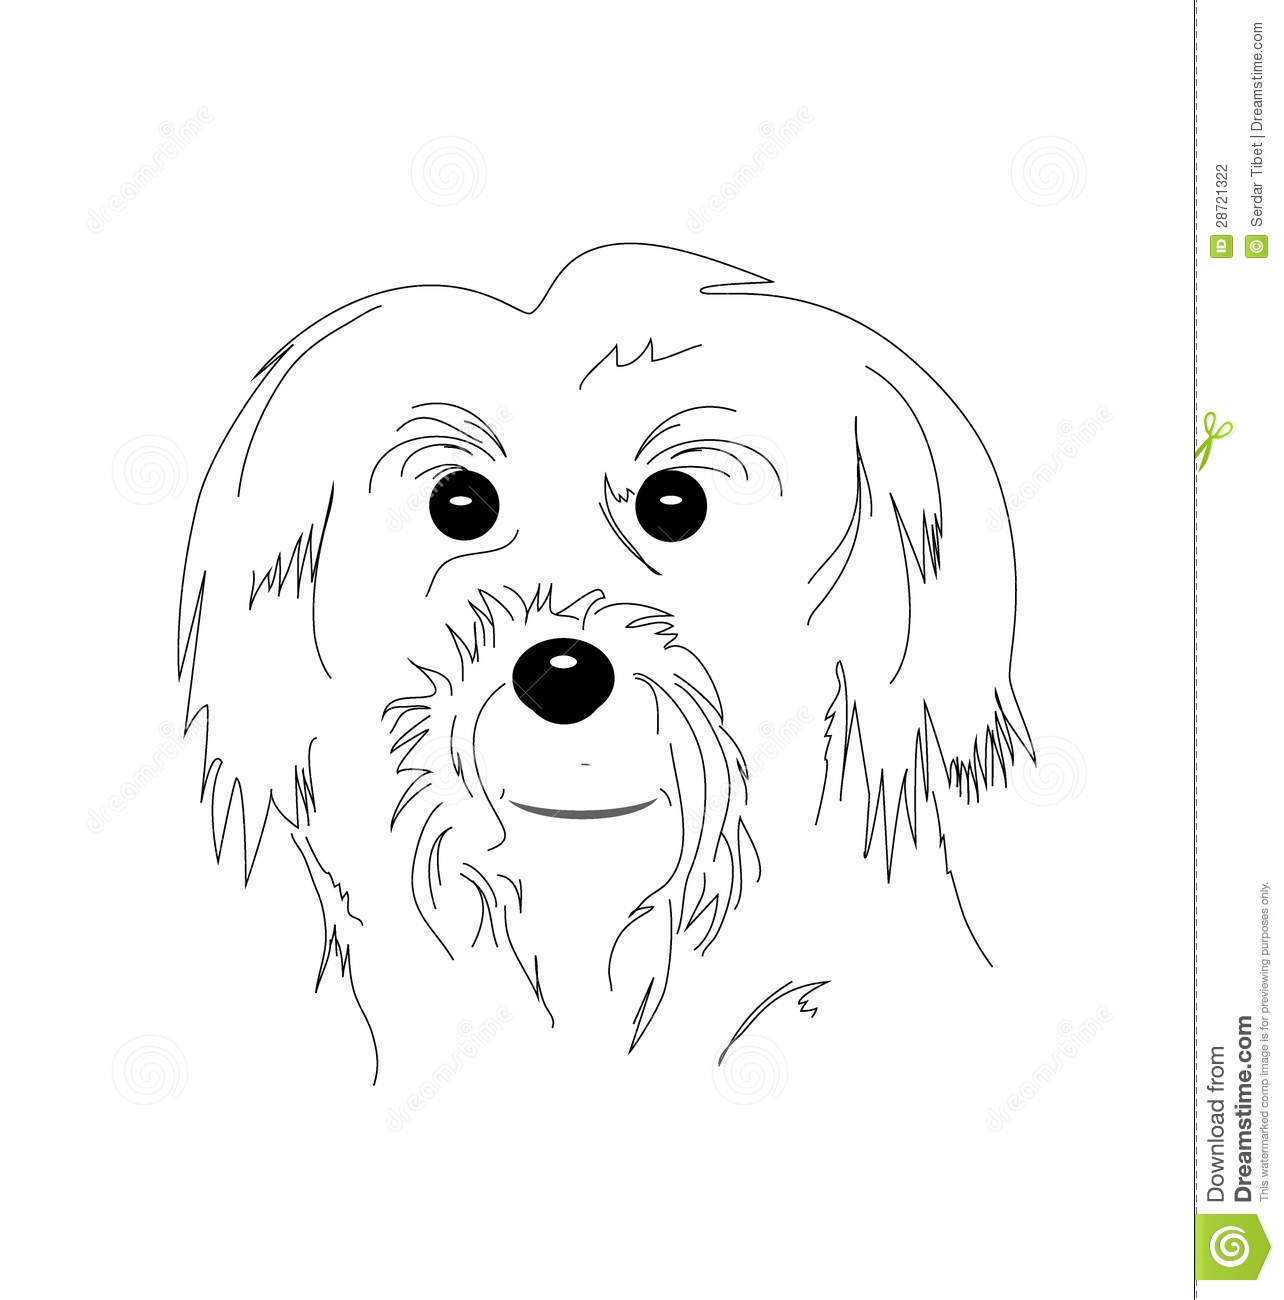 maltese dog clipart - photo #30